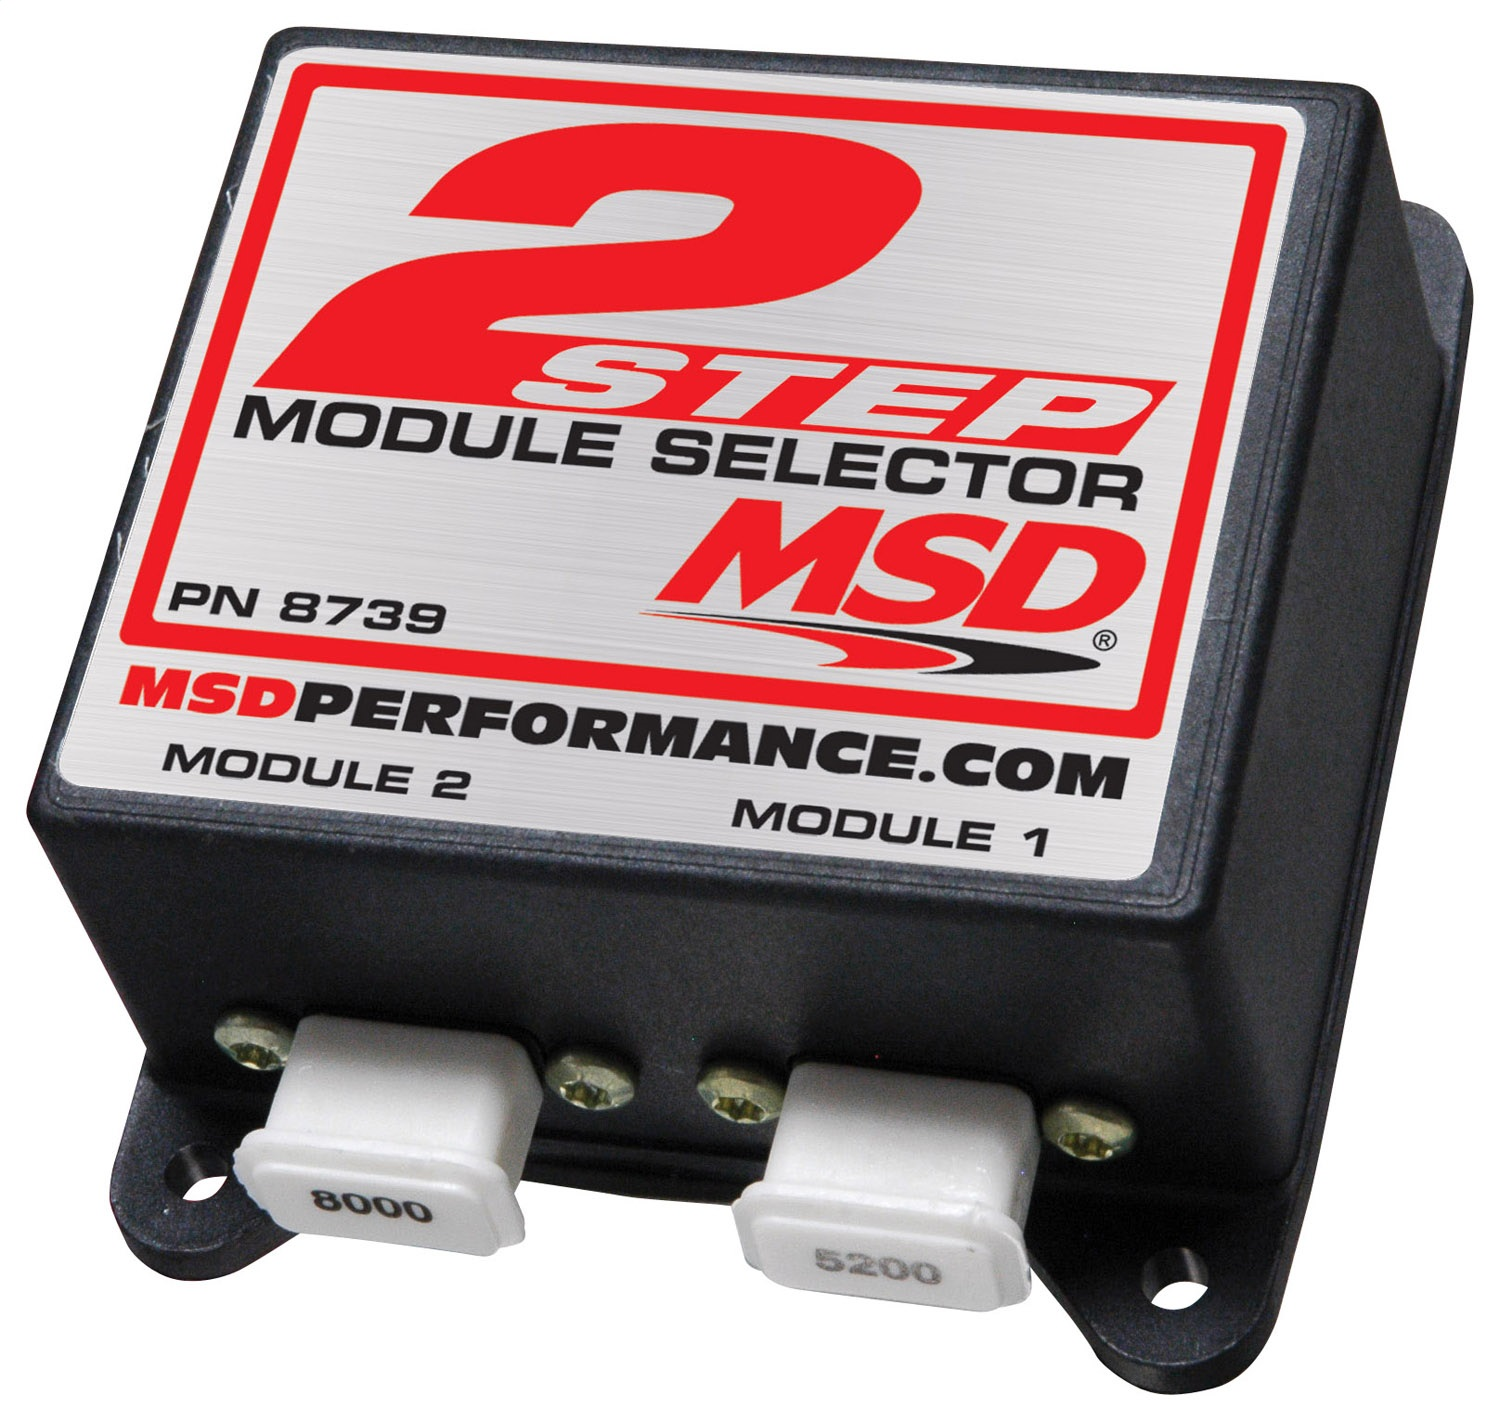 MSD Ignition 8739 2-Step Rev Limiter RPM Module Selector